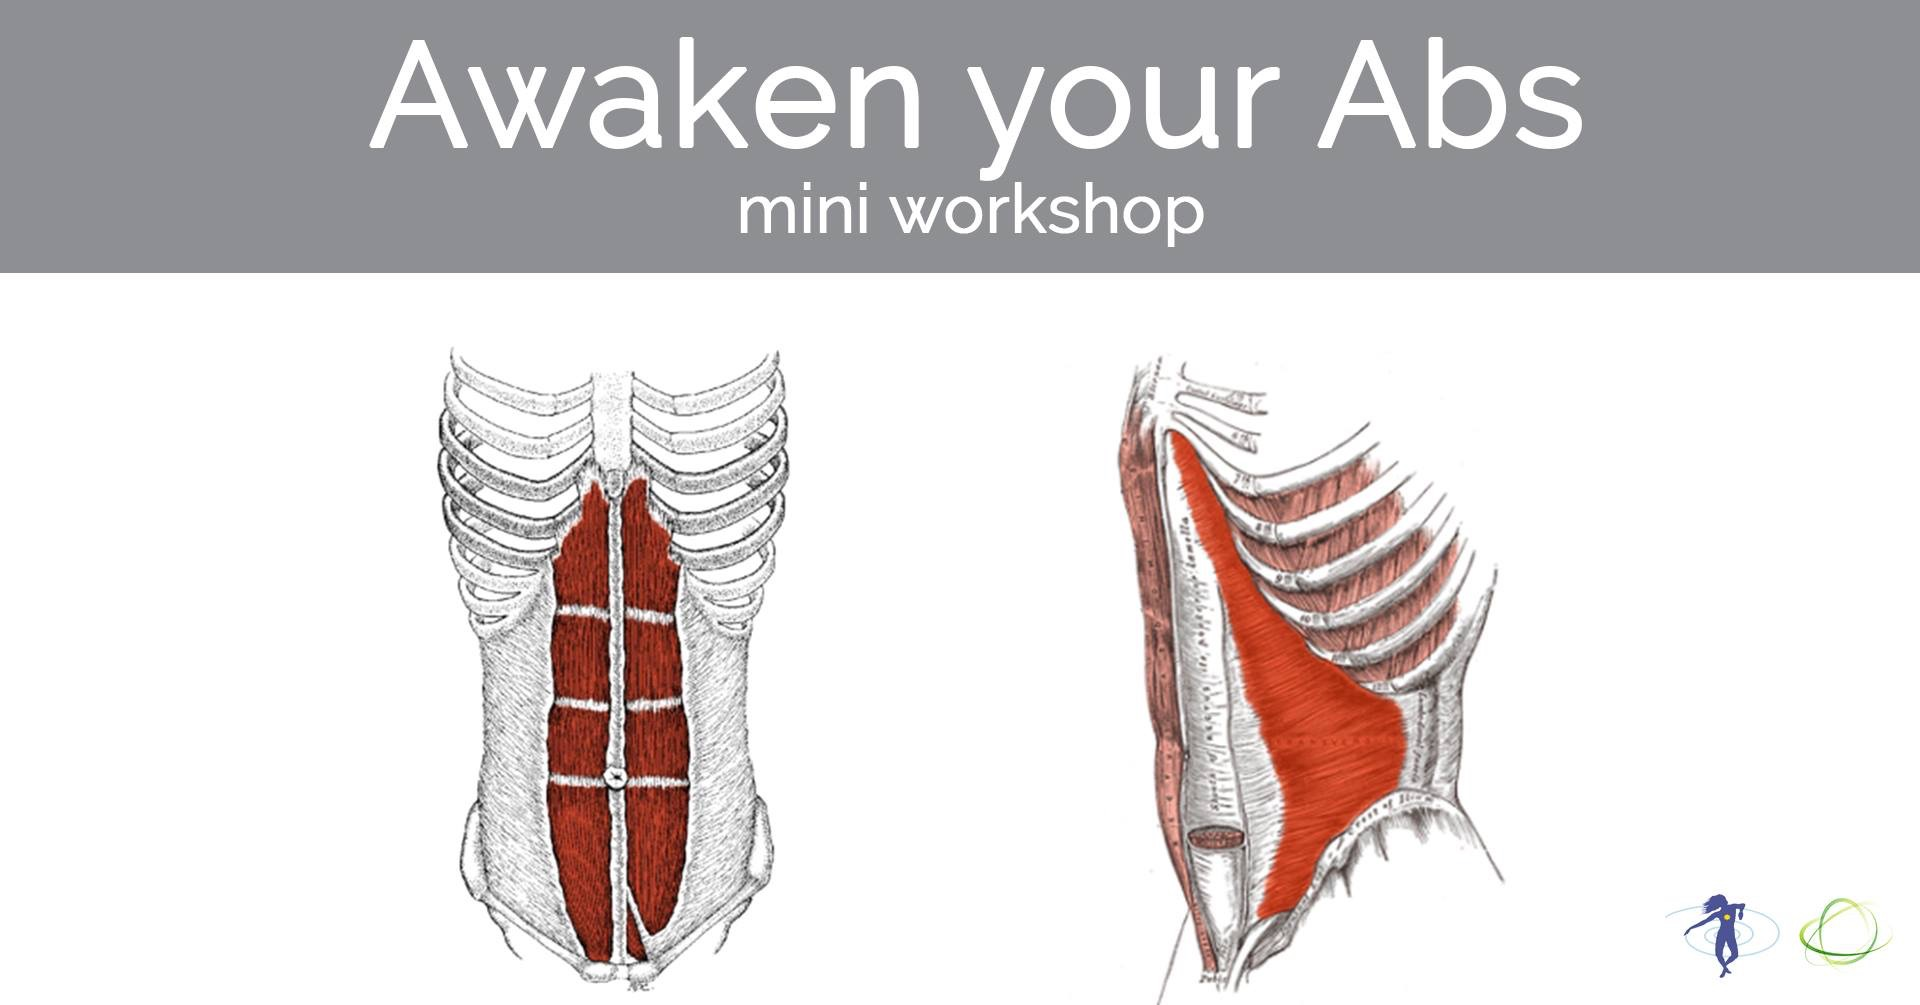 Abdominals play a role in so much more than just a good looking six pack. In this workshop you'll be introduced to the 4 layers of abdominals as well as their function and necessary integration with other parts of the body. The use of balls, bands and embodiment will have you leaving with a profound new appreciation for these body wall muscles.  Thursday, 16 May 2019 from 13:30-14:30: click  here  to reserve your spot.